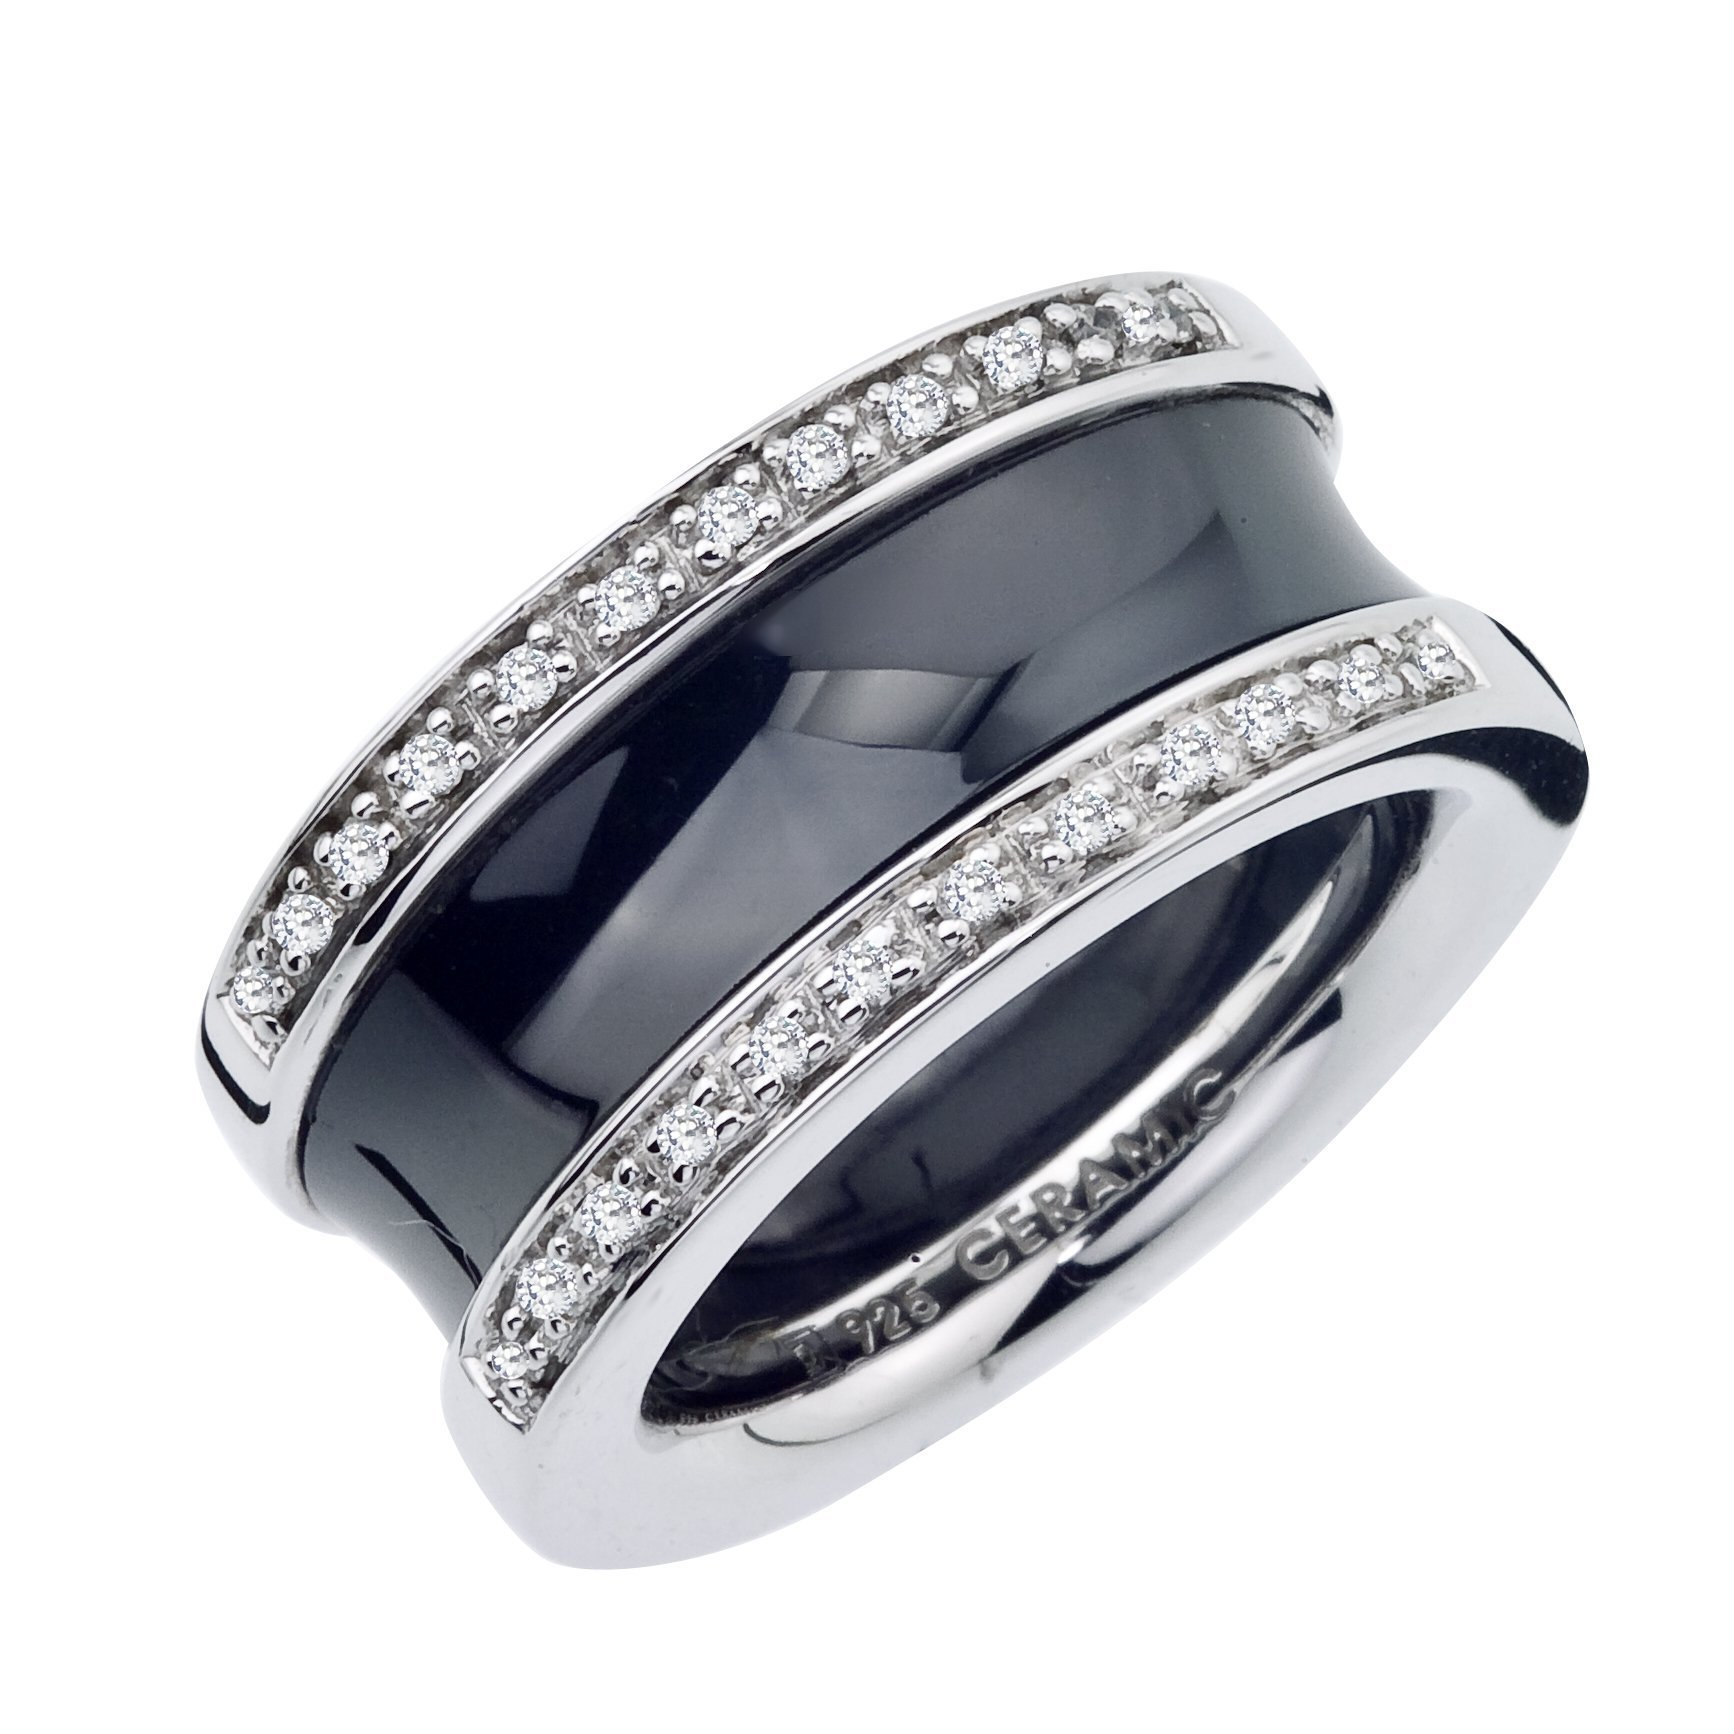 12mm Diamond Band in Black Ceramic and Sterling Silver (0.16 carats, H-I I2 I3)